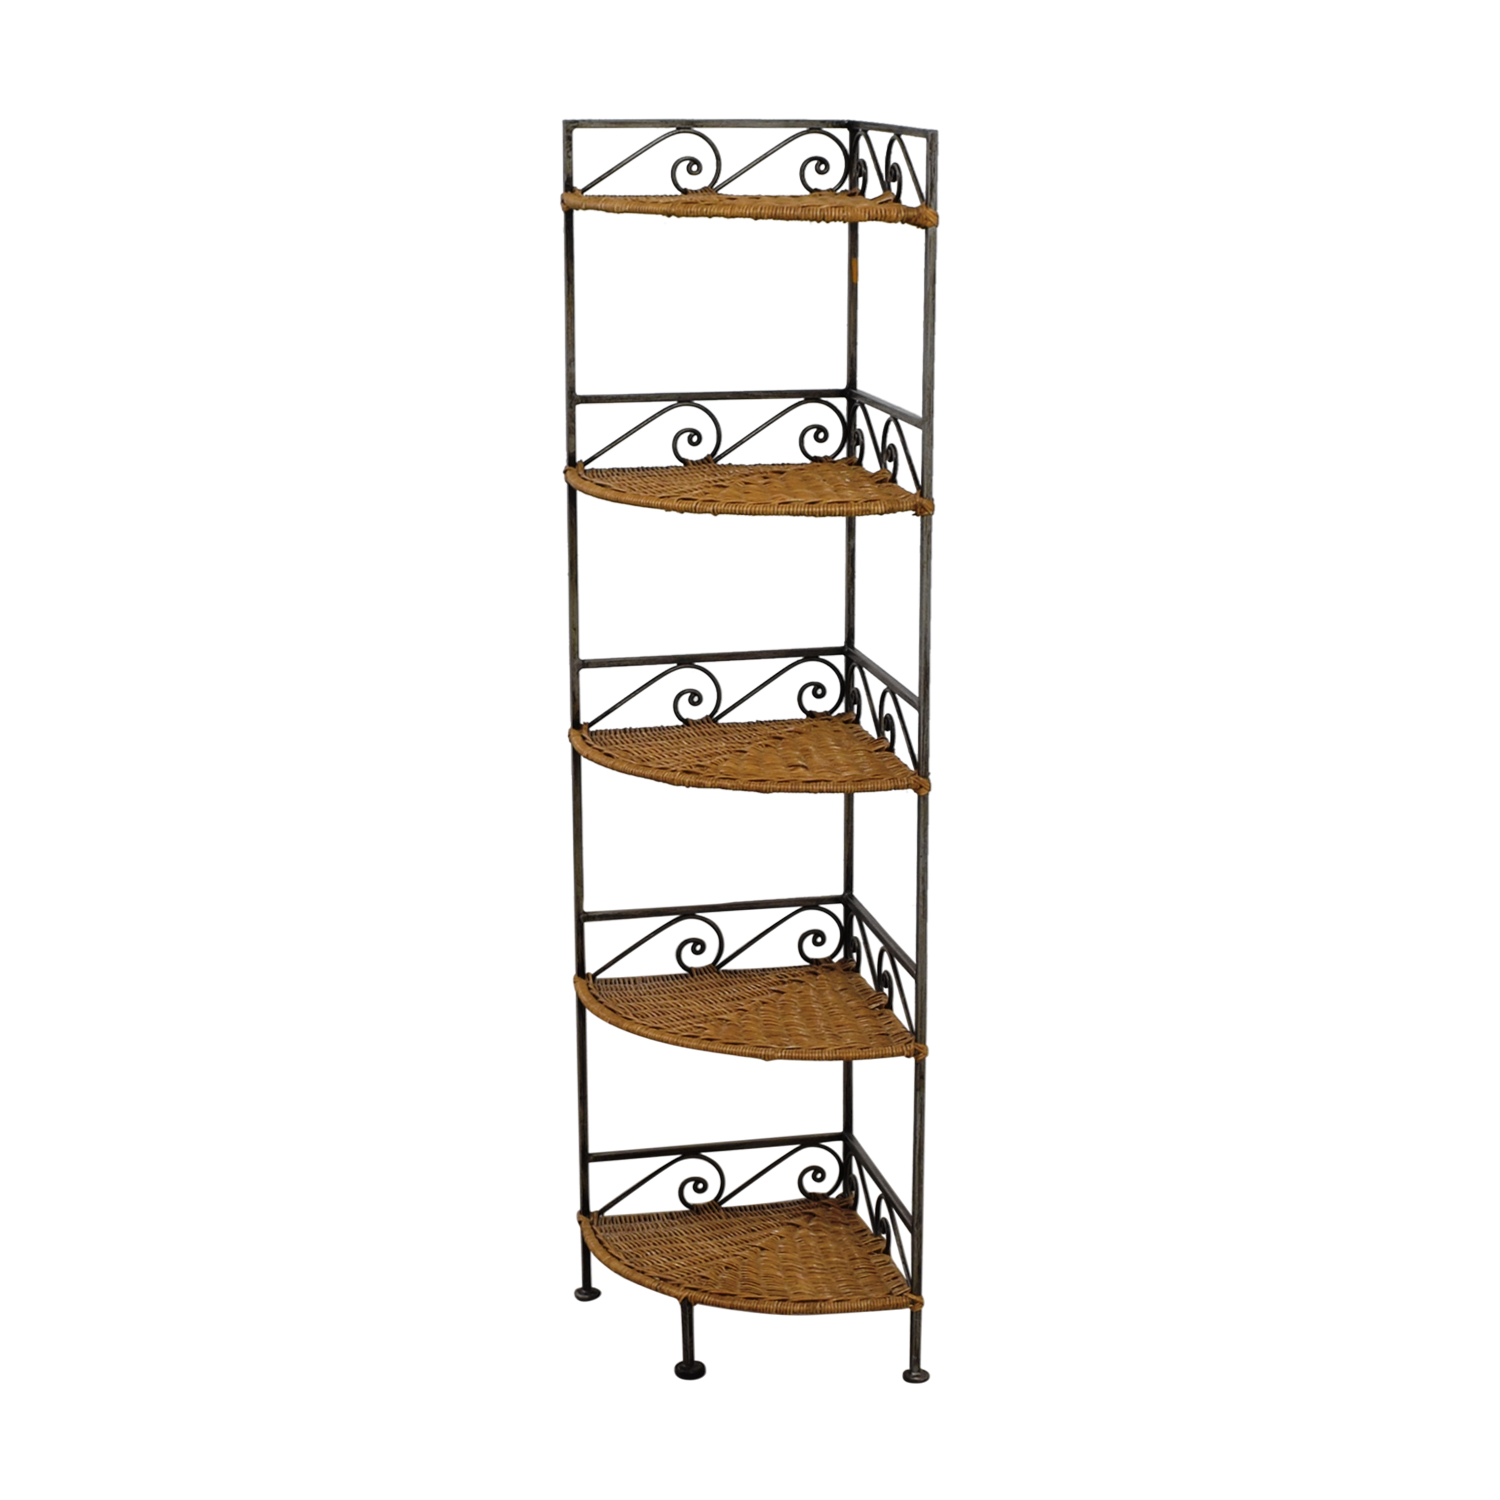 Pier 1 Imports Pier 1 Imports Metal and Wicker Corner Shelves dimensions